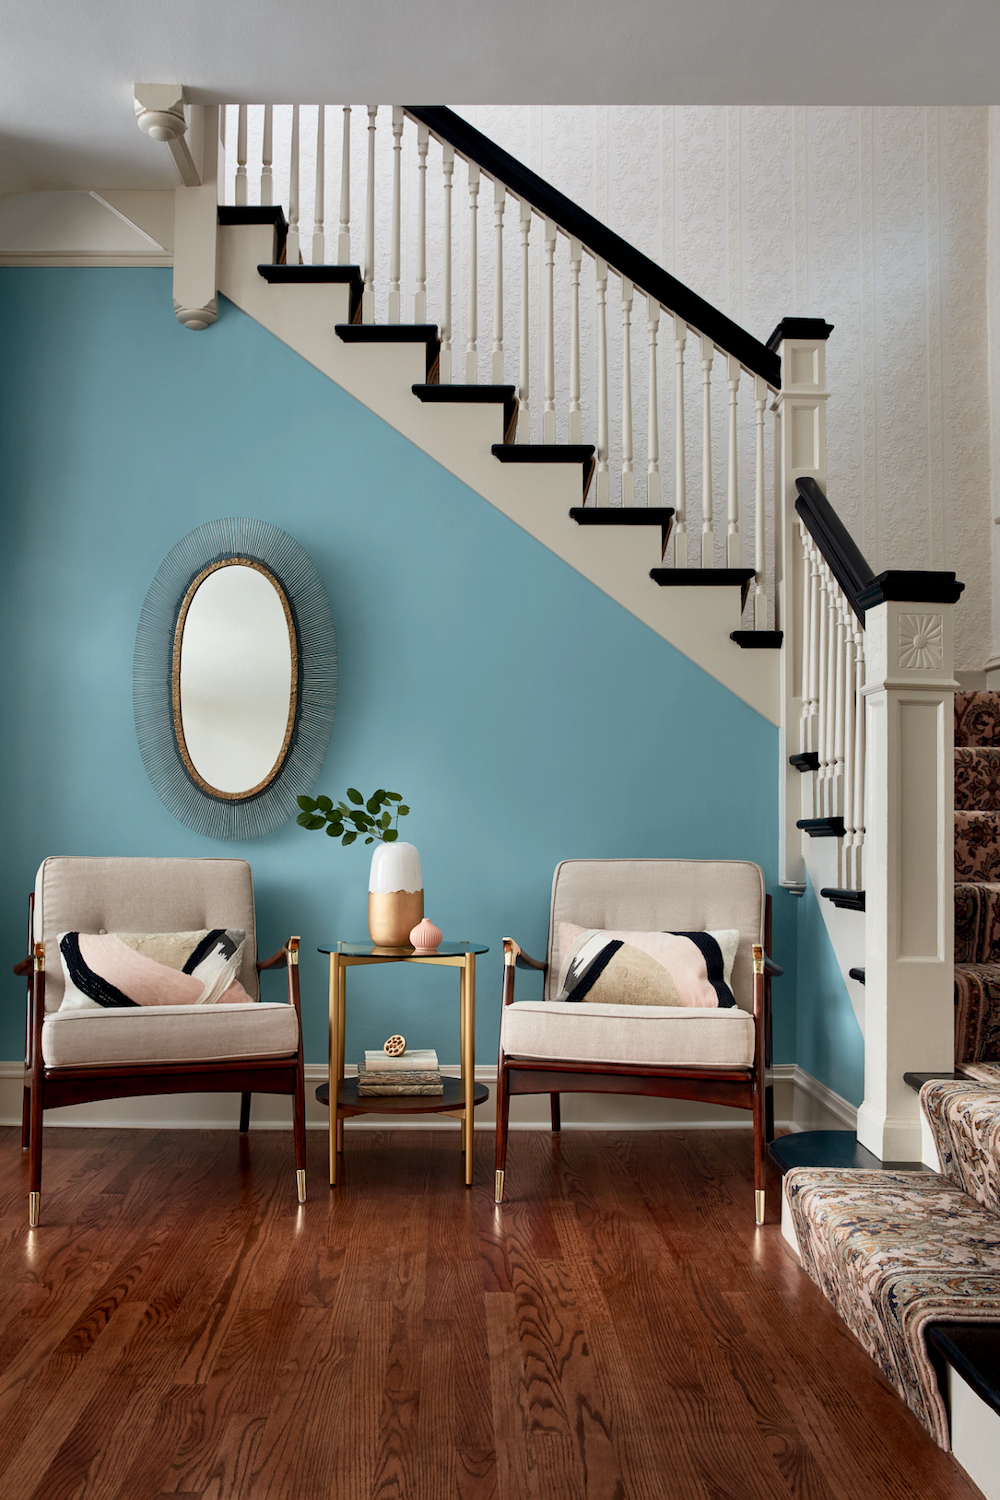 Valspar S 2021 Colors Of The Year Inspired By Mindfulness And Wellbeing